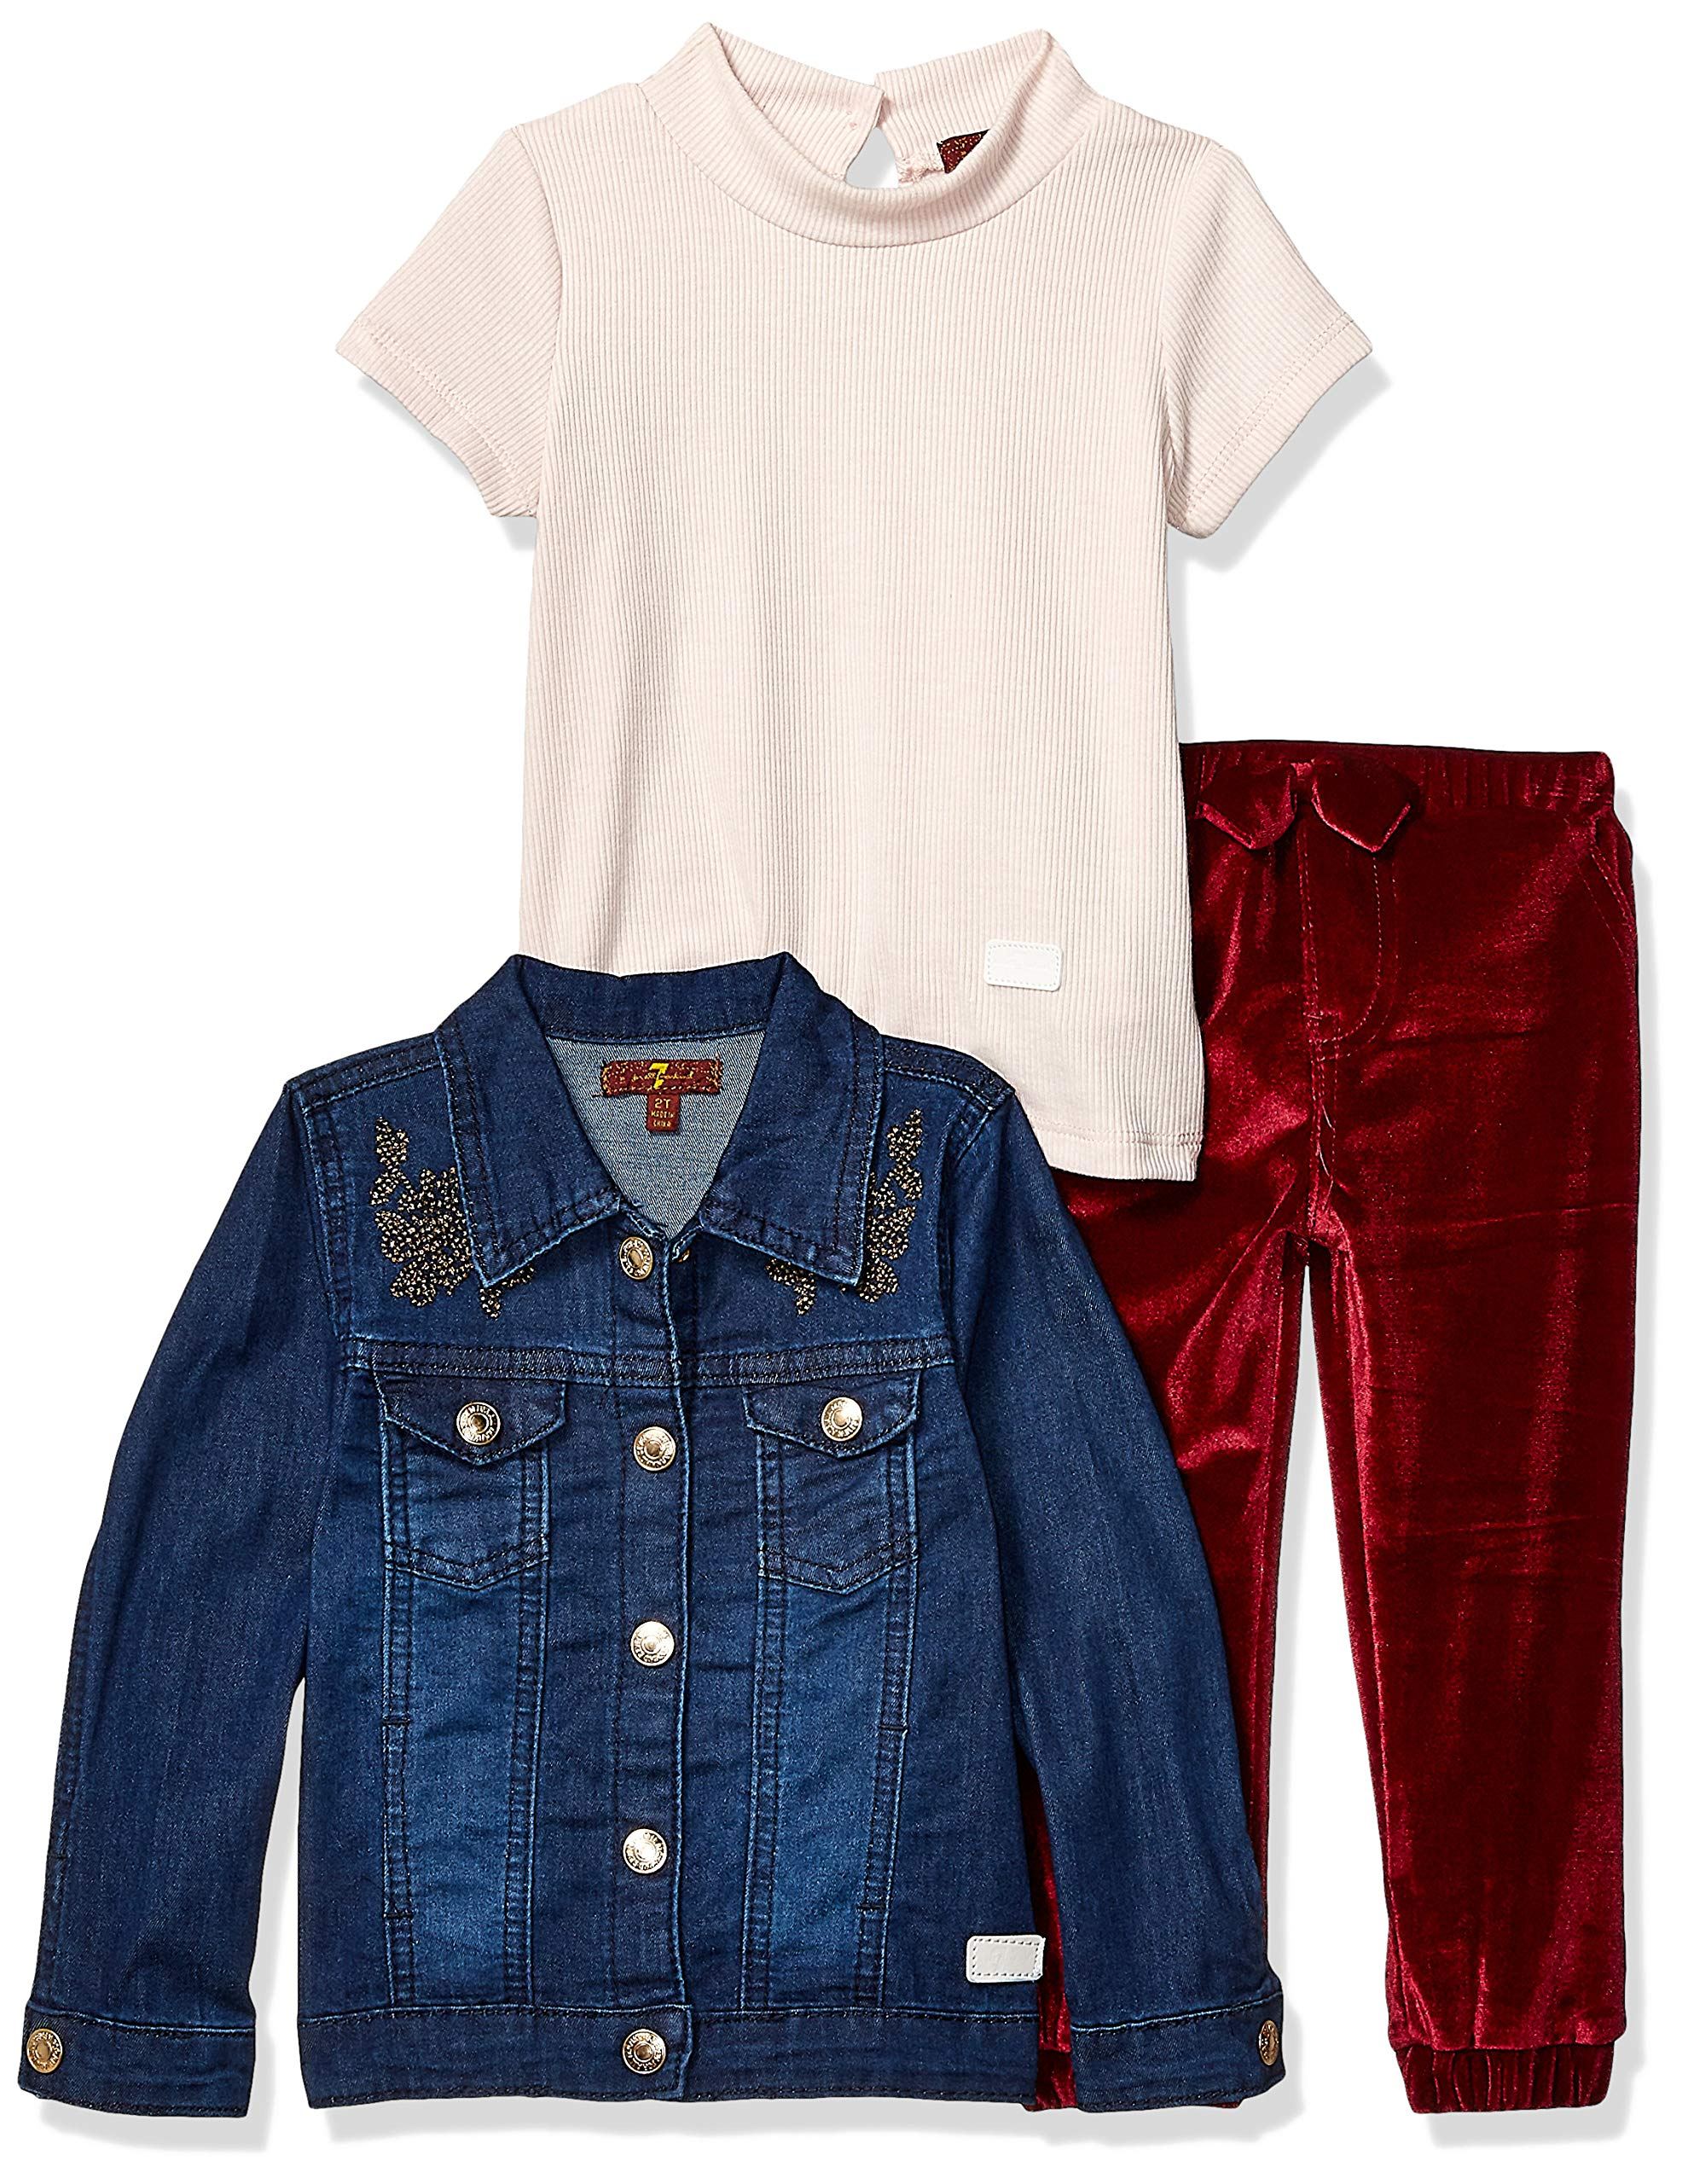 7 For All Mankind Girls' Toddler Jacket, Short Sleeve Tee and Pant Set